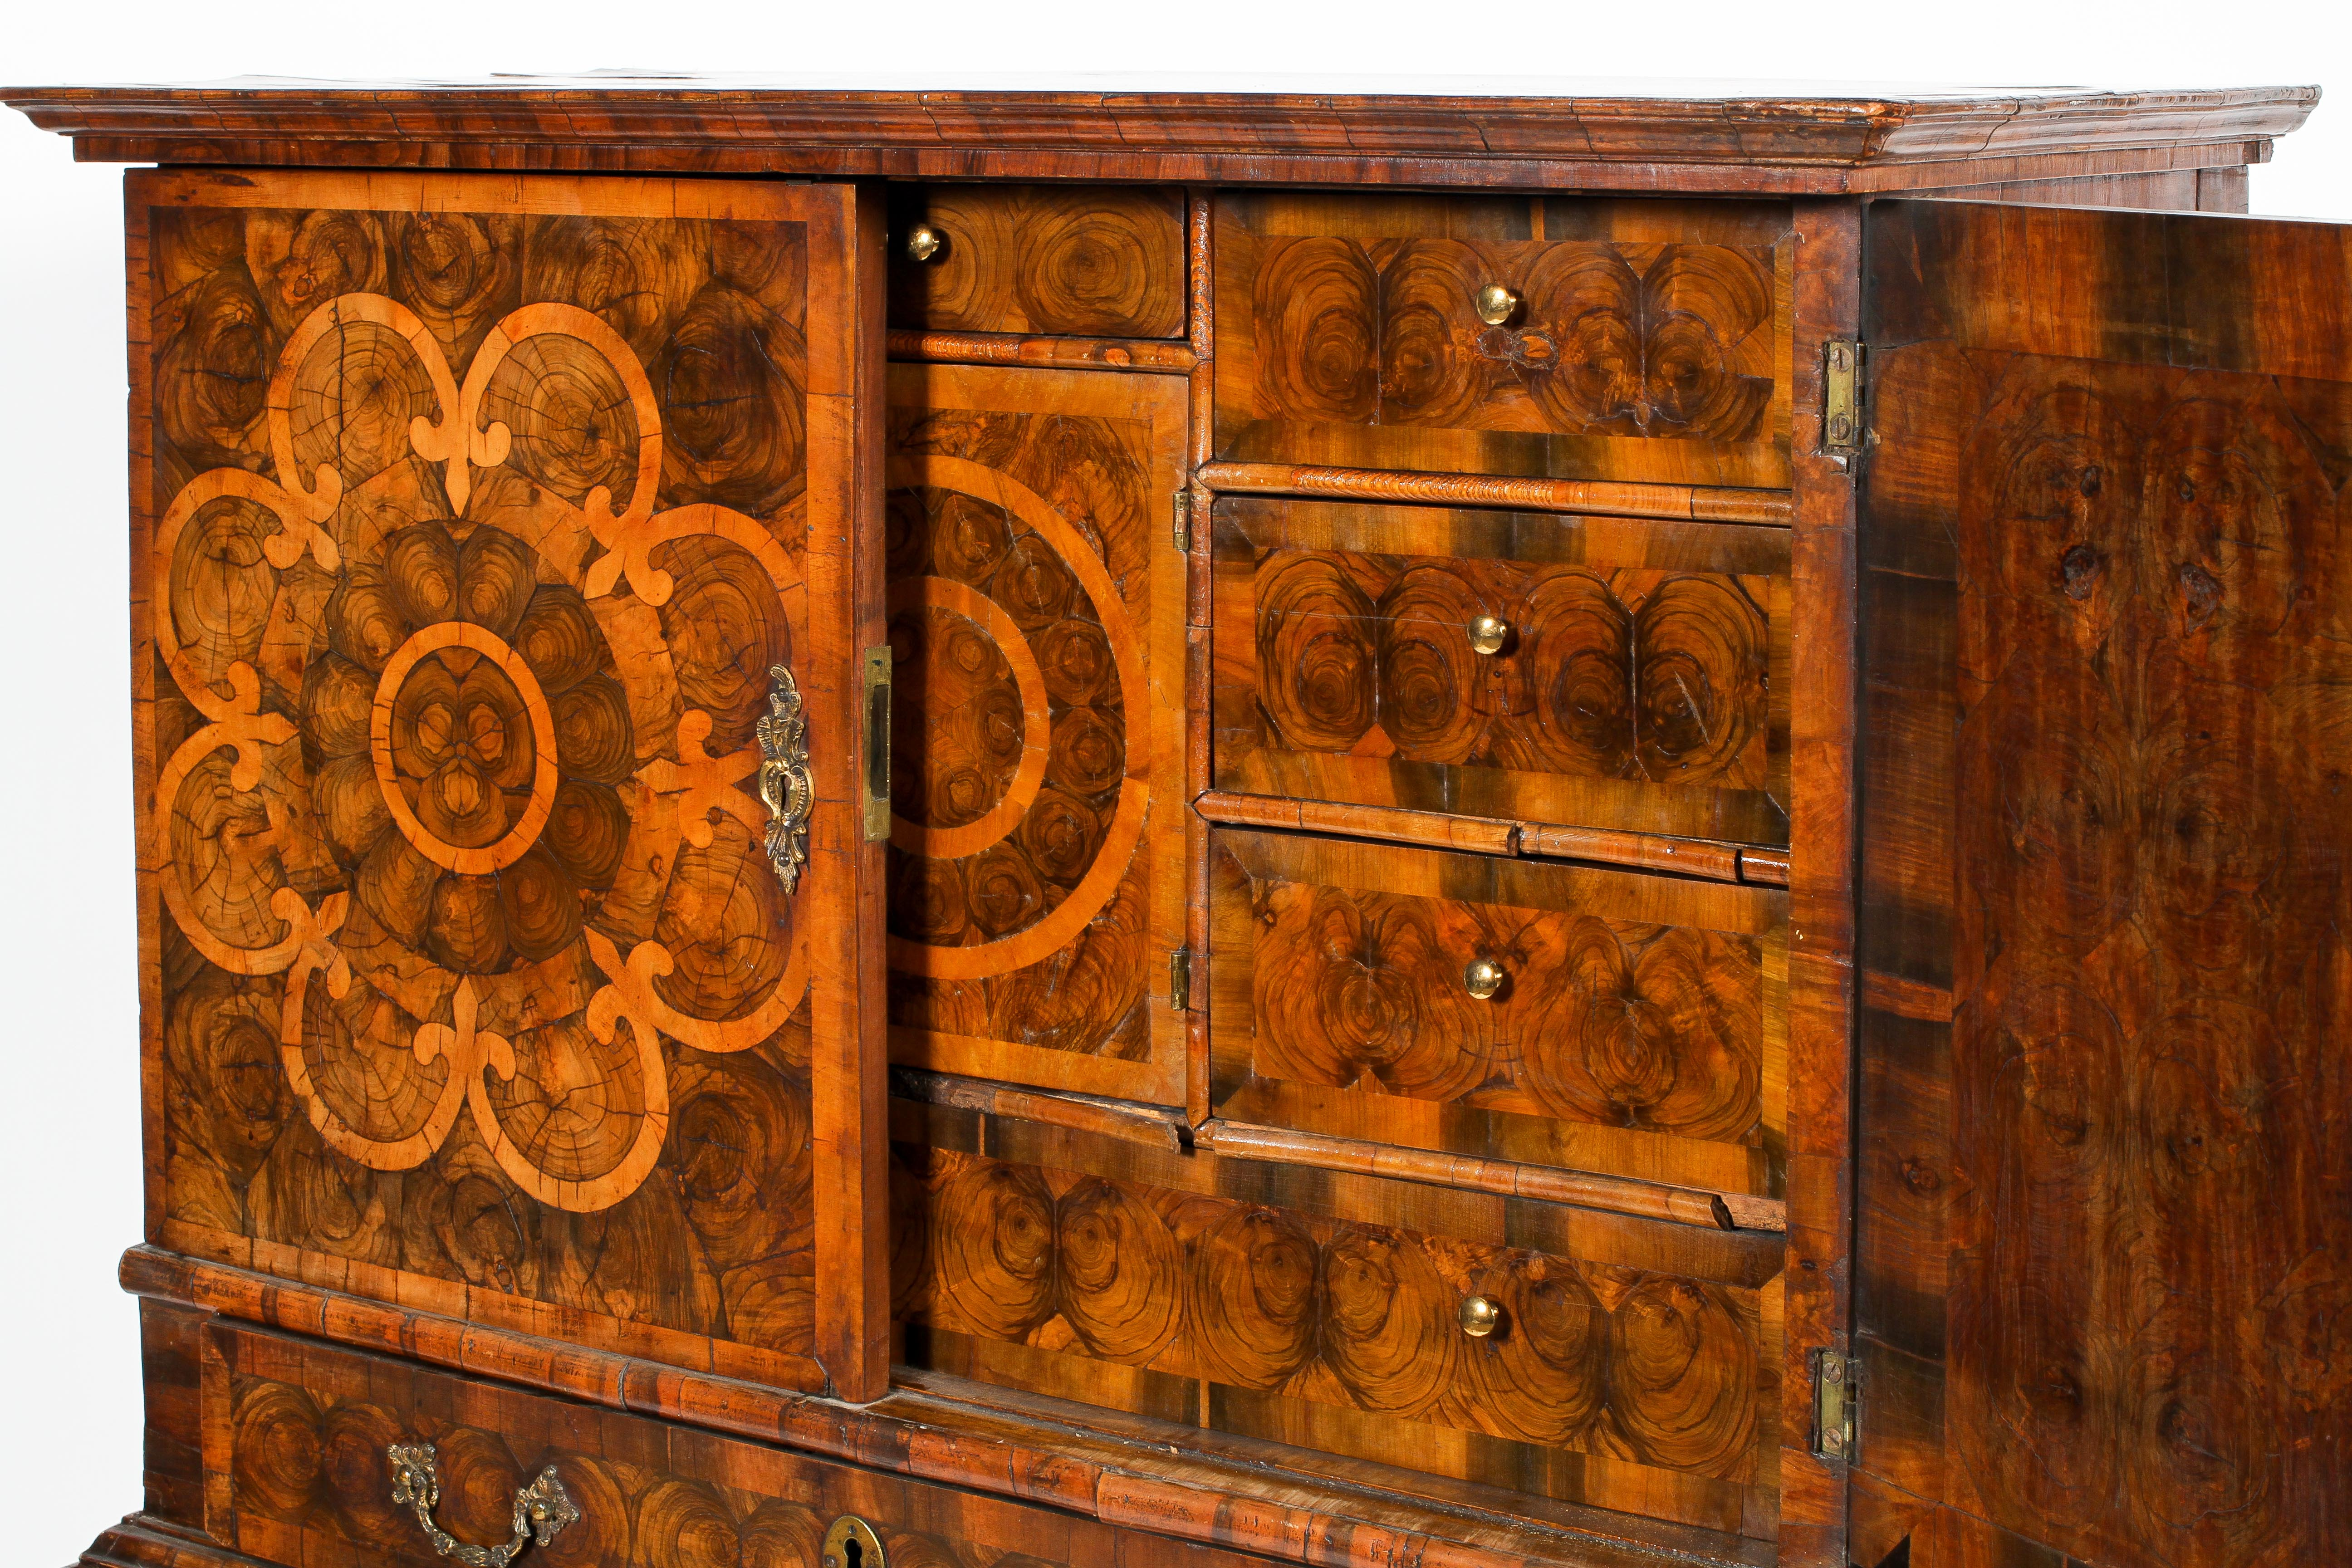 An oyster veneered cabinet on stand, 17th century style but later in date, - Image 2 of 18